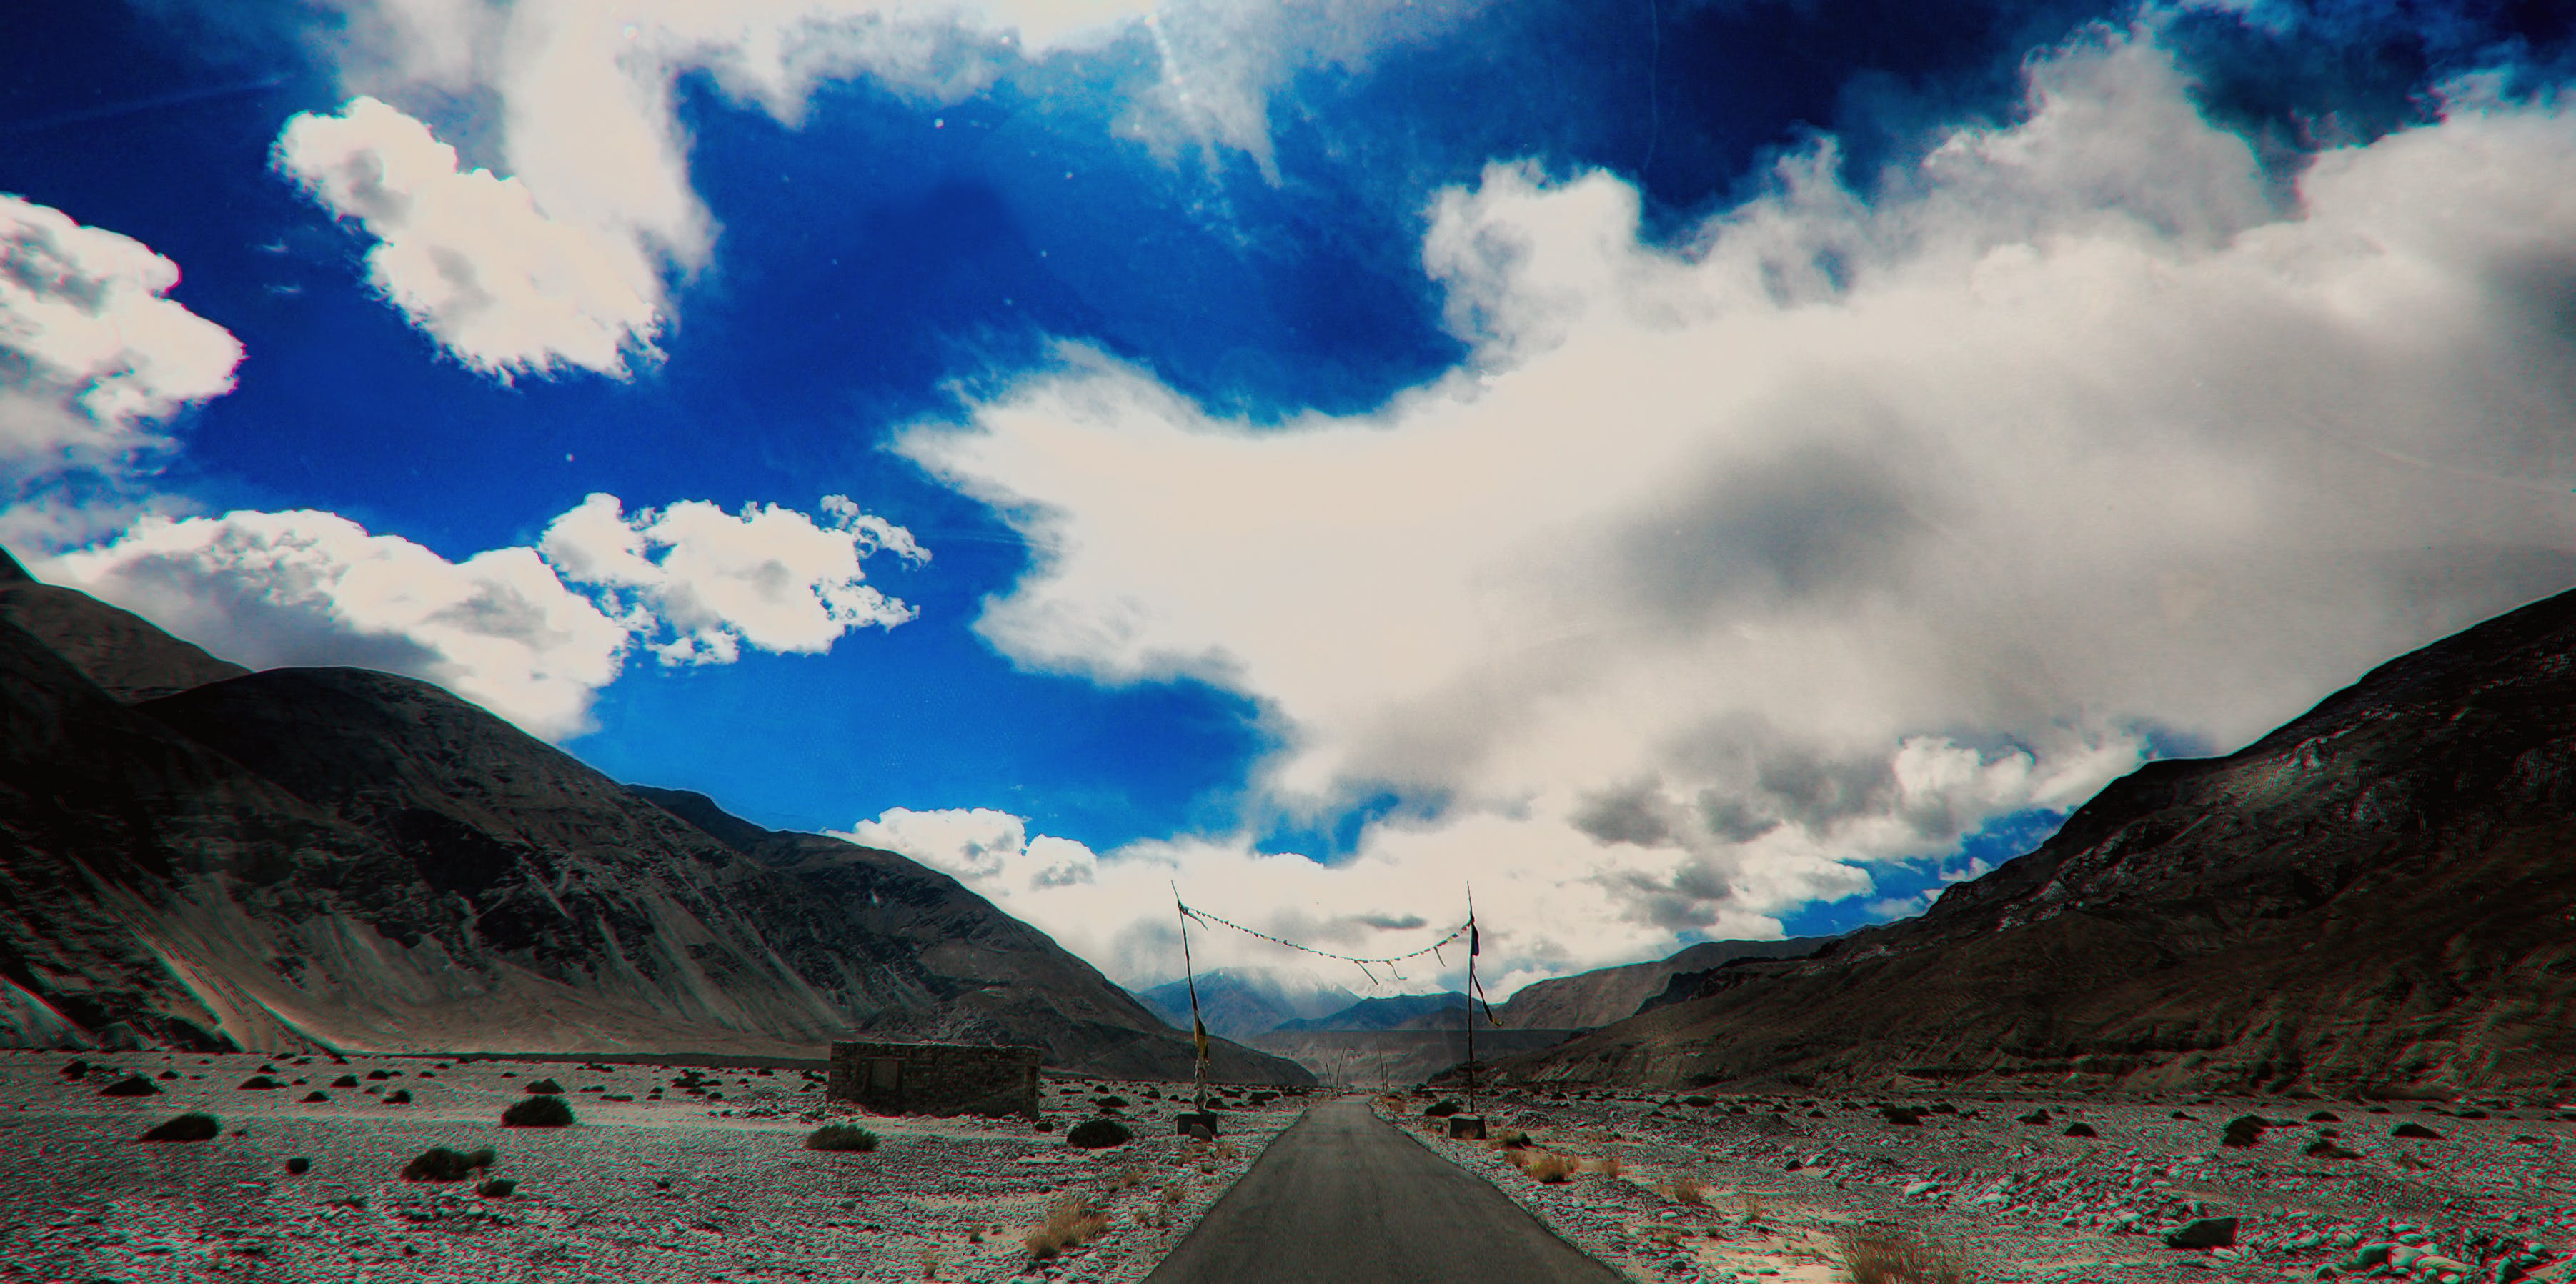 Free stock photo of blue sky, clear sky, india, landscapes